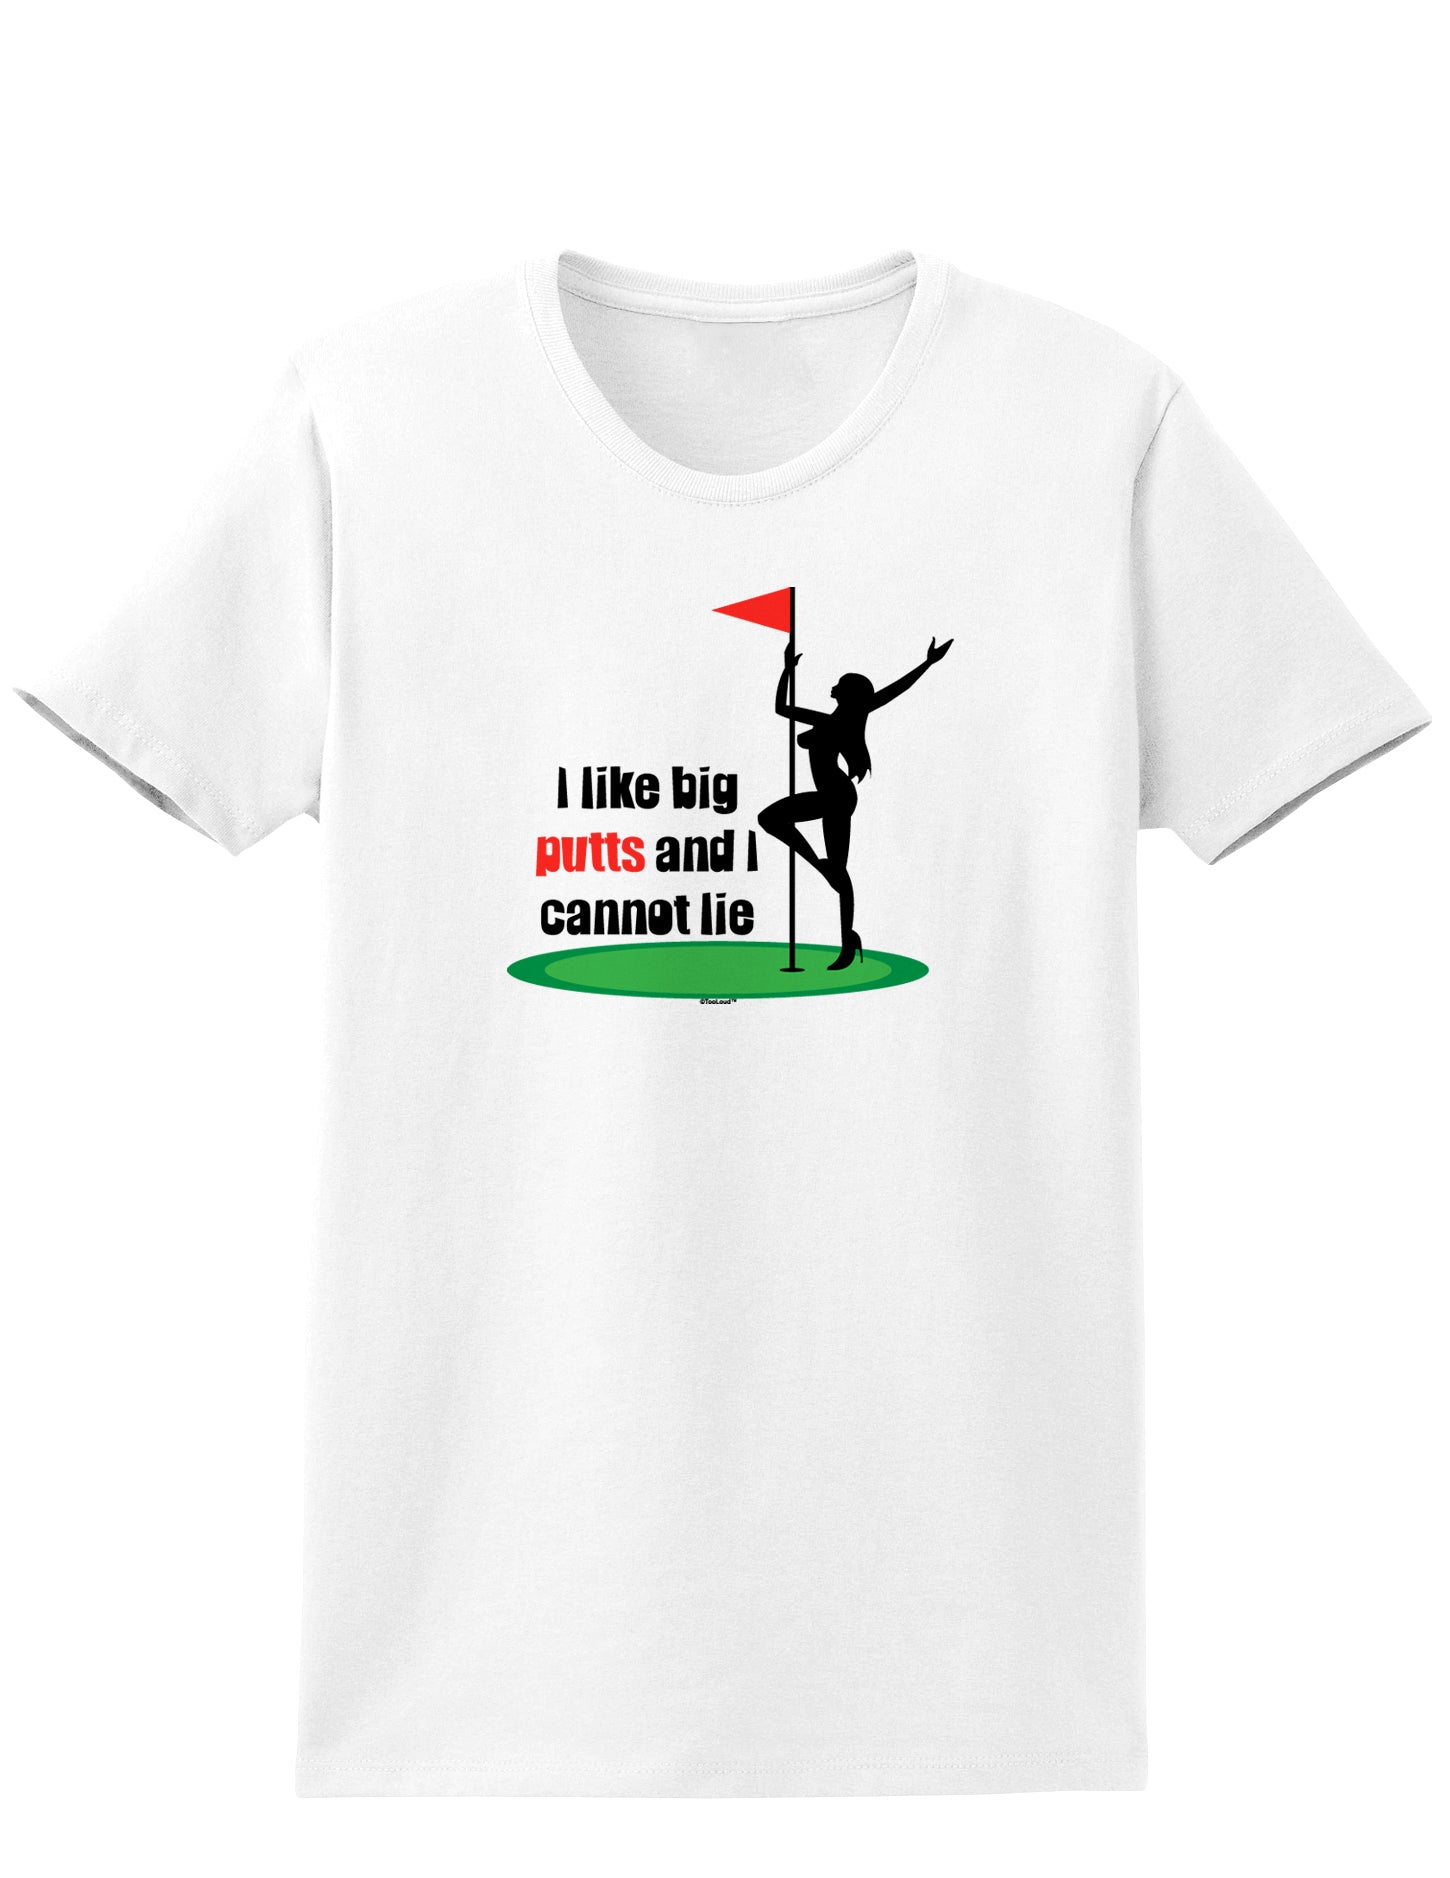 I like big putts and I cannot lie Womens T-Shirt